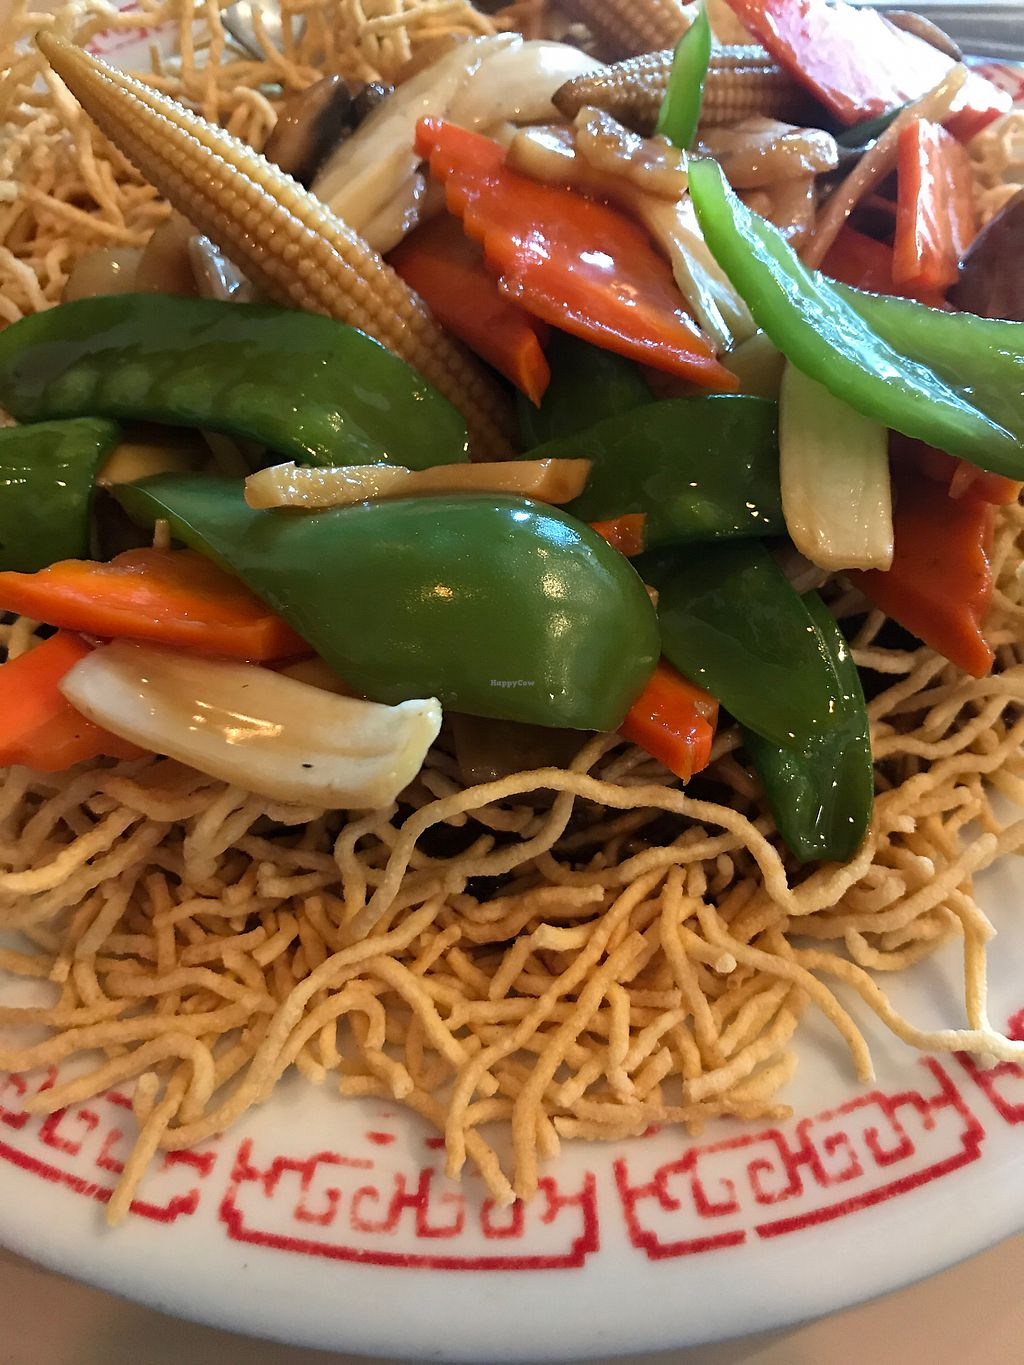 """Photo of Saigon Family Restaurant  by <a href=""""/members/profile/leftywilliams"""">leftywilliams</a> <br/>crispy lo mein  <br/> July 3, 2017  - <a href='/contact/abuse/image/12749/276404'>Report</a>"""